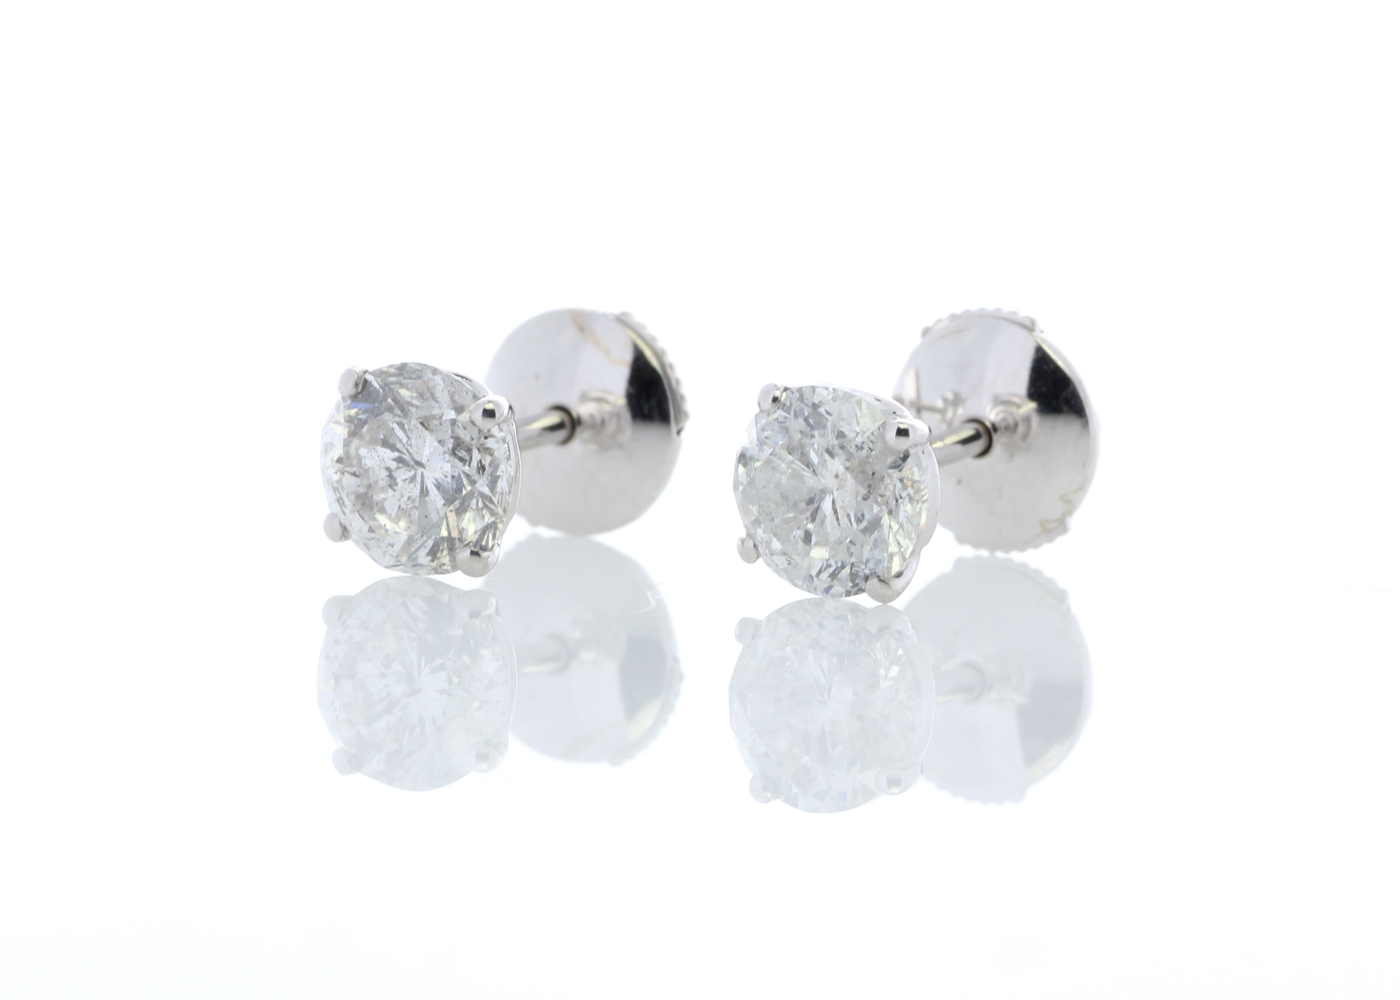 18ct White Gold Claw Set Diamond Earrings 2.21 Carats - Image 2 of 4